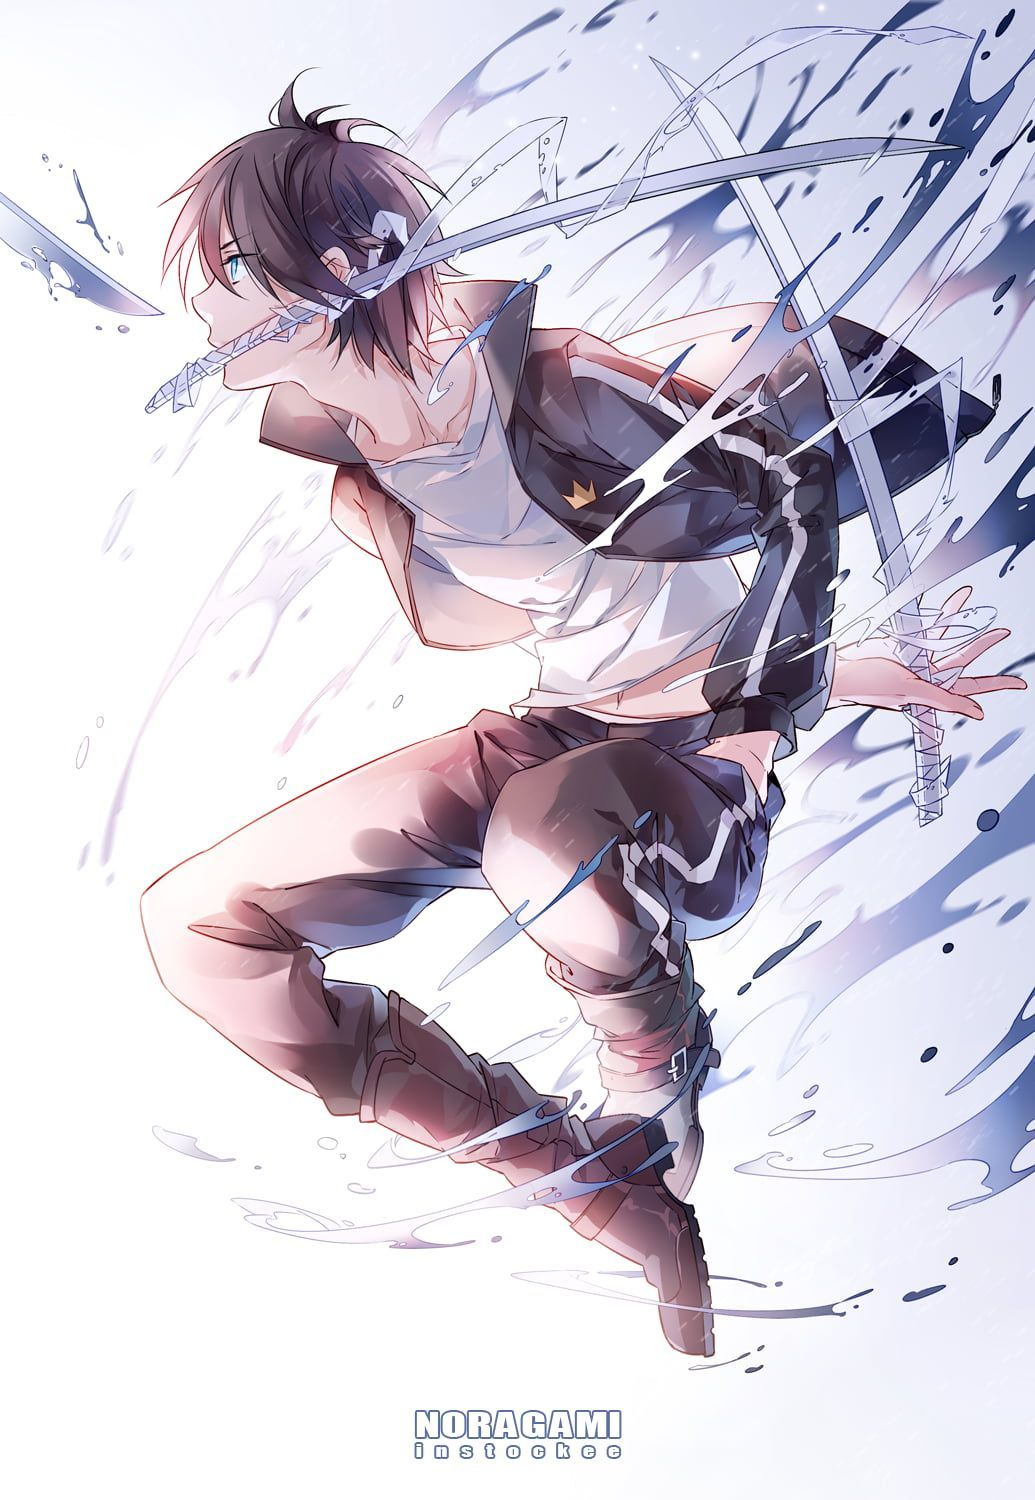 Black Haired Male Anime Character Illustration Anime Boys Noragami Black Hair Y Anime Black Boys Charact Noragami Anime Yato Noragami Noragami Wallpaper Anime boy with sword wallpaper